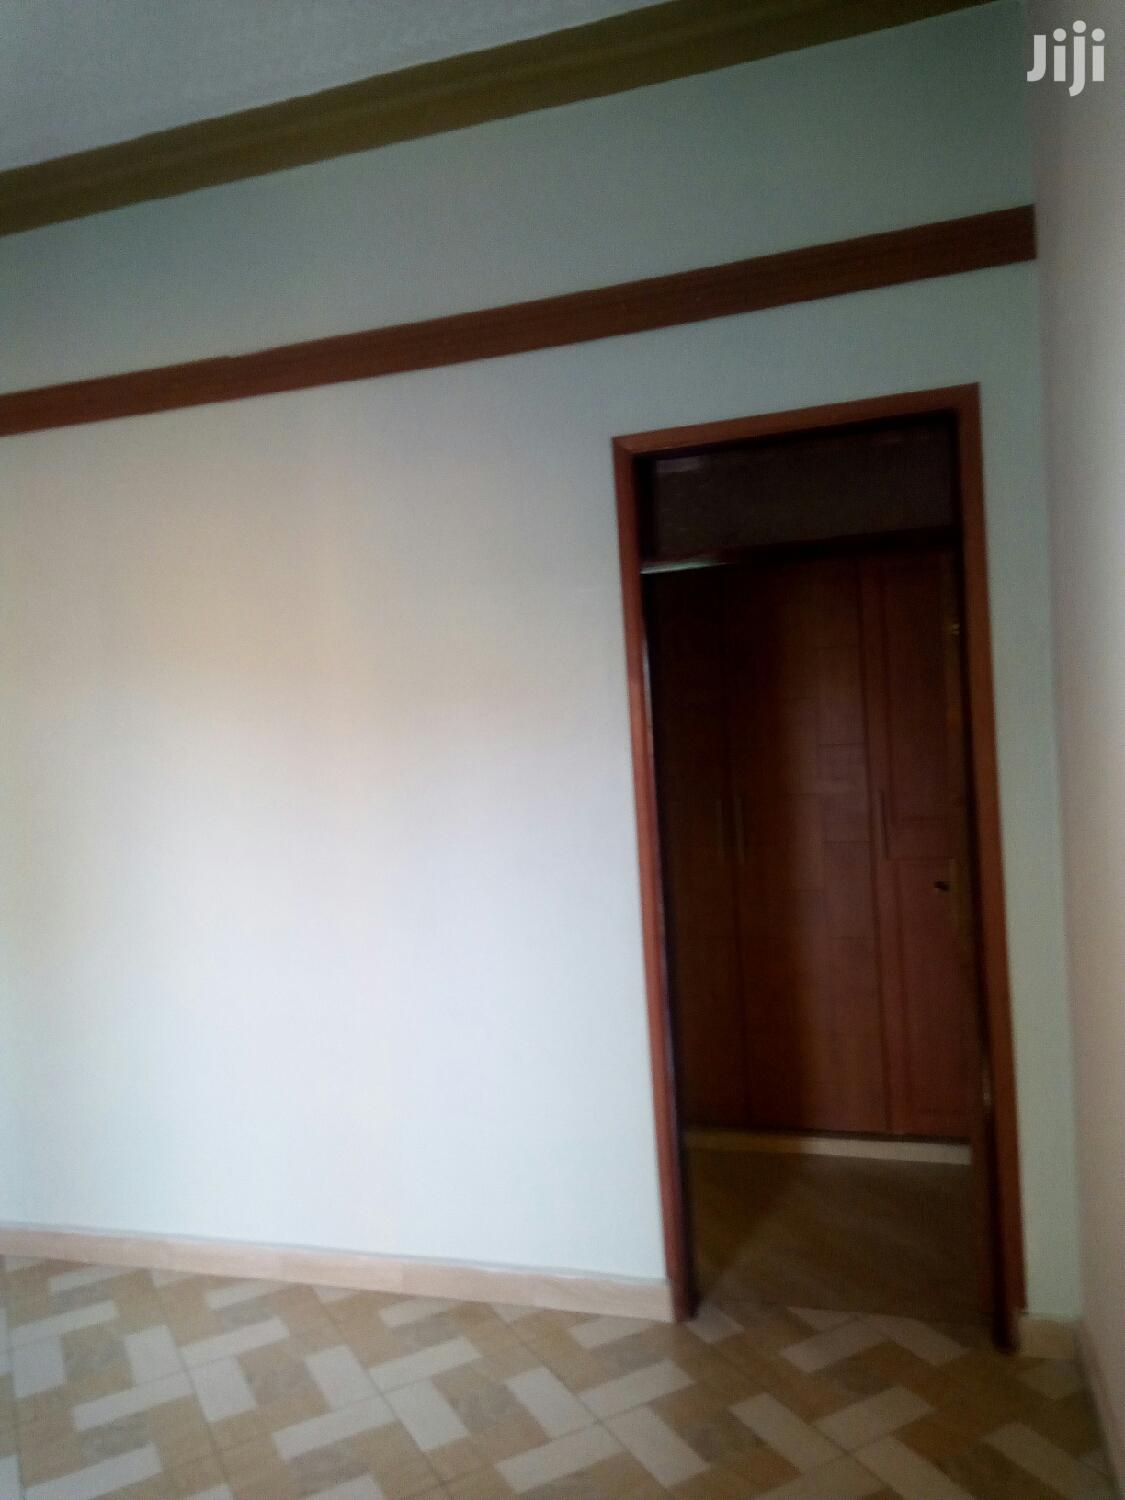 Brand New Double Rooms for Rent in Bweyogerere | Houses & Apartments For Rent for sale in Kampala, Central Region, Uganda